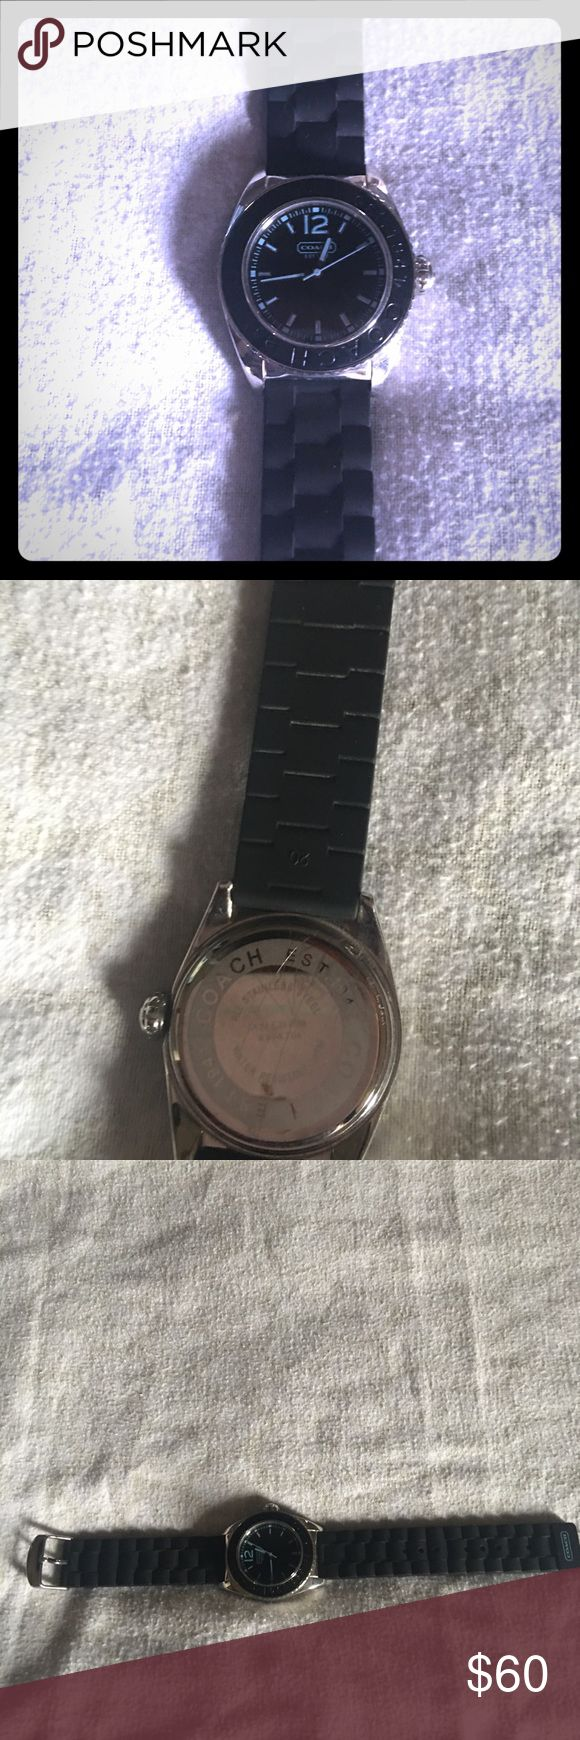 😍😍Authentic Coach Wristwatch 😍😍 Watch is in great condition. Wide face with Coach and Coach origin year engraved around the face. A couple of scratches on the back as shown in pics. Great Watch for Coach collectors! Coach Jewelry